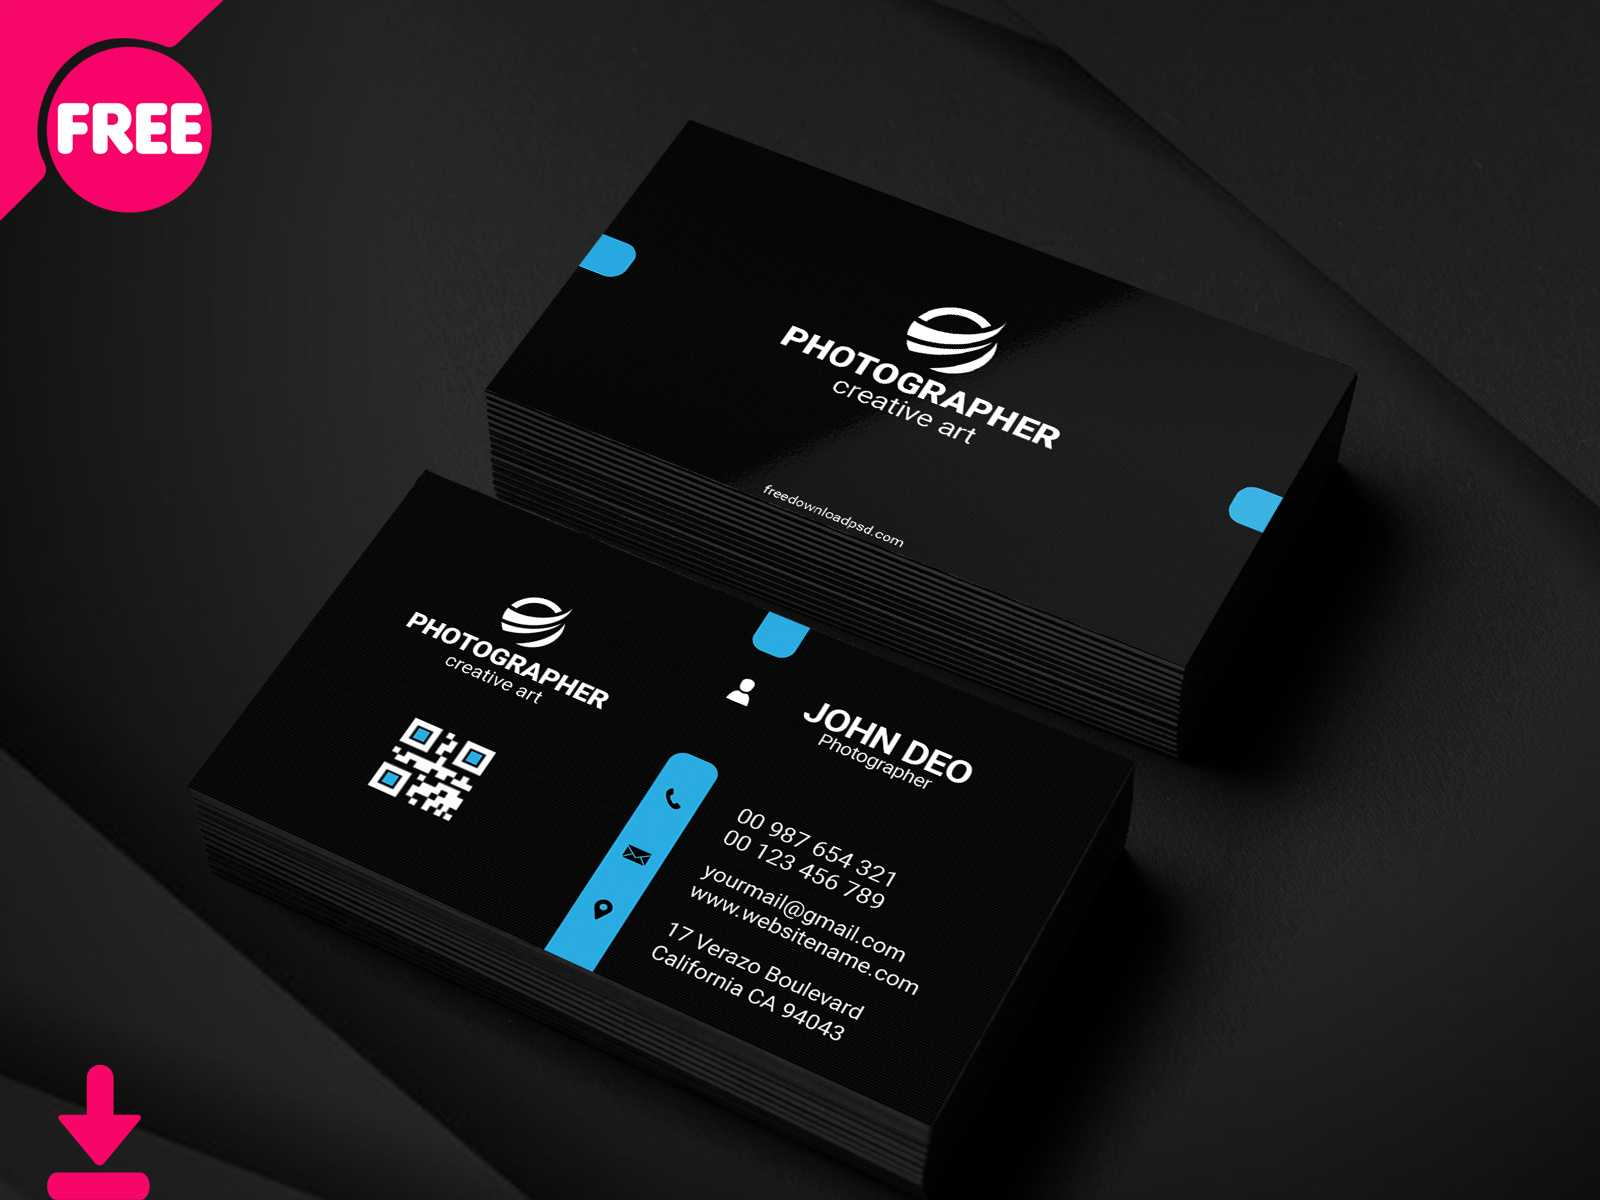 Free Personal Business Card Psd Template Cover | Searchmuzli For Free Personal Business Card Templates